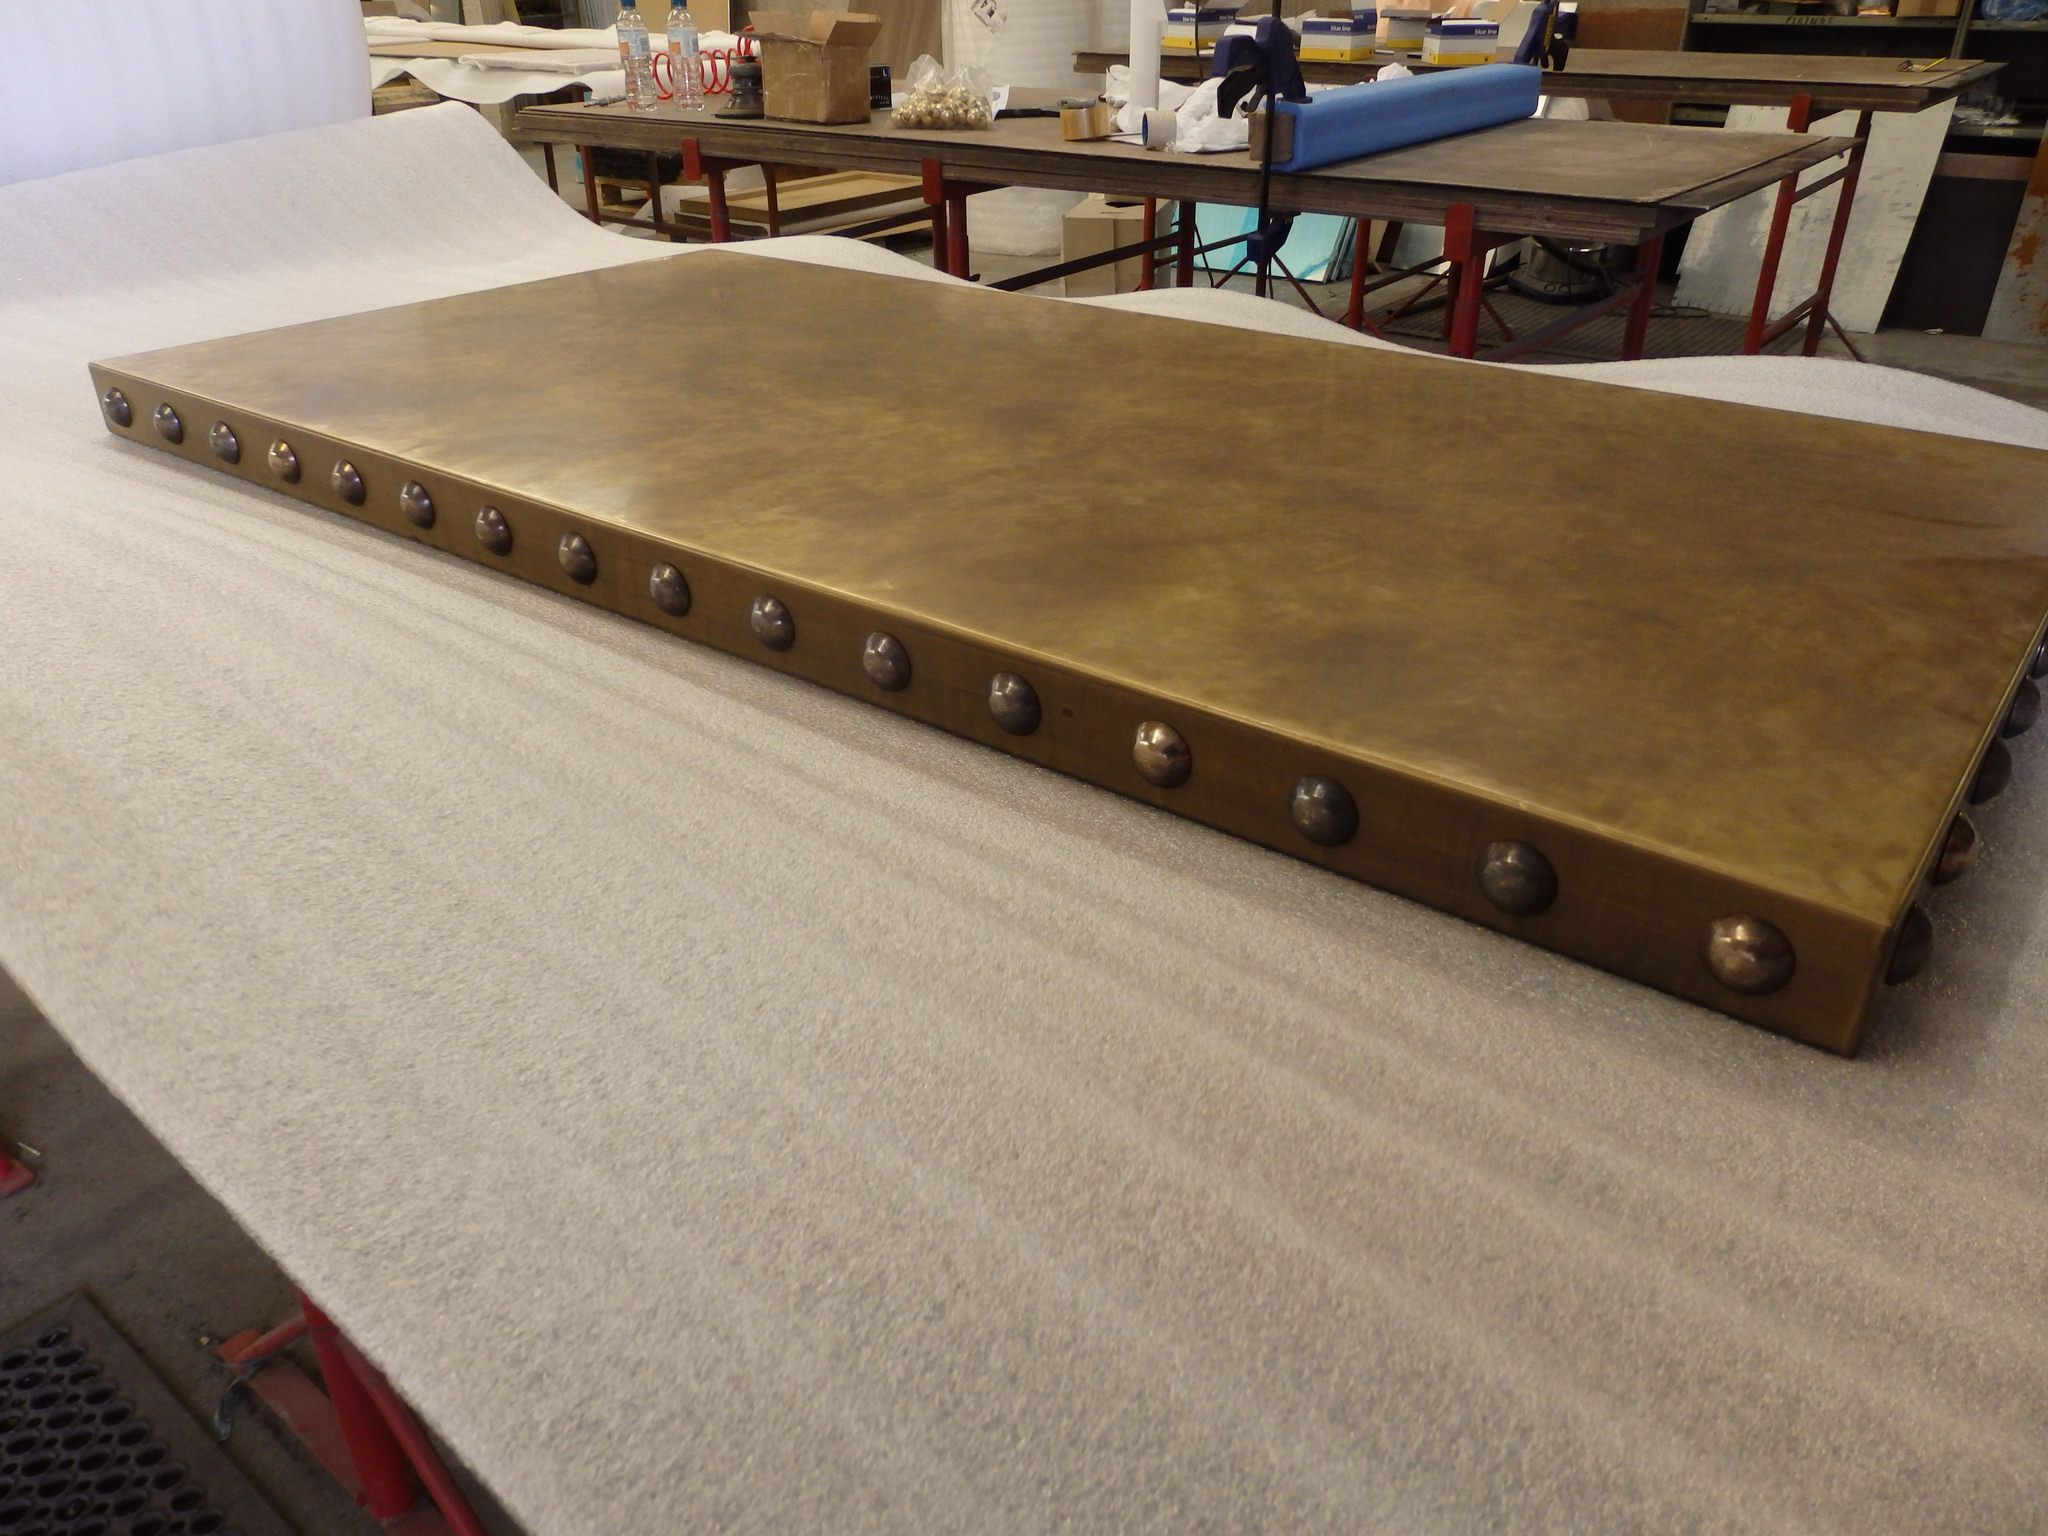 147 Aged Brass Table Top With Antique Brass Domed Studs Brass Table Zinc Table Antique Brass [ 1536 x 2048 Pixel ]